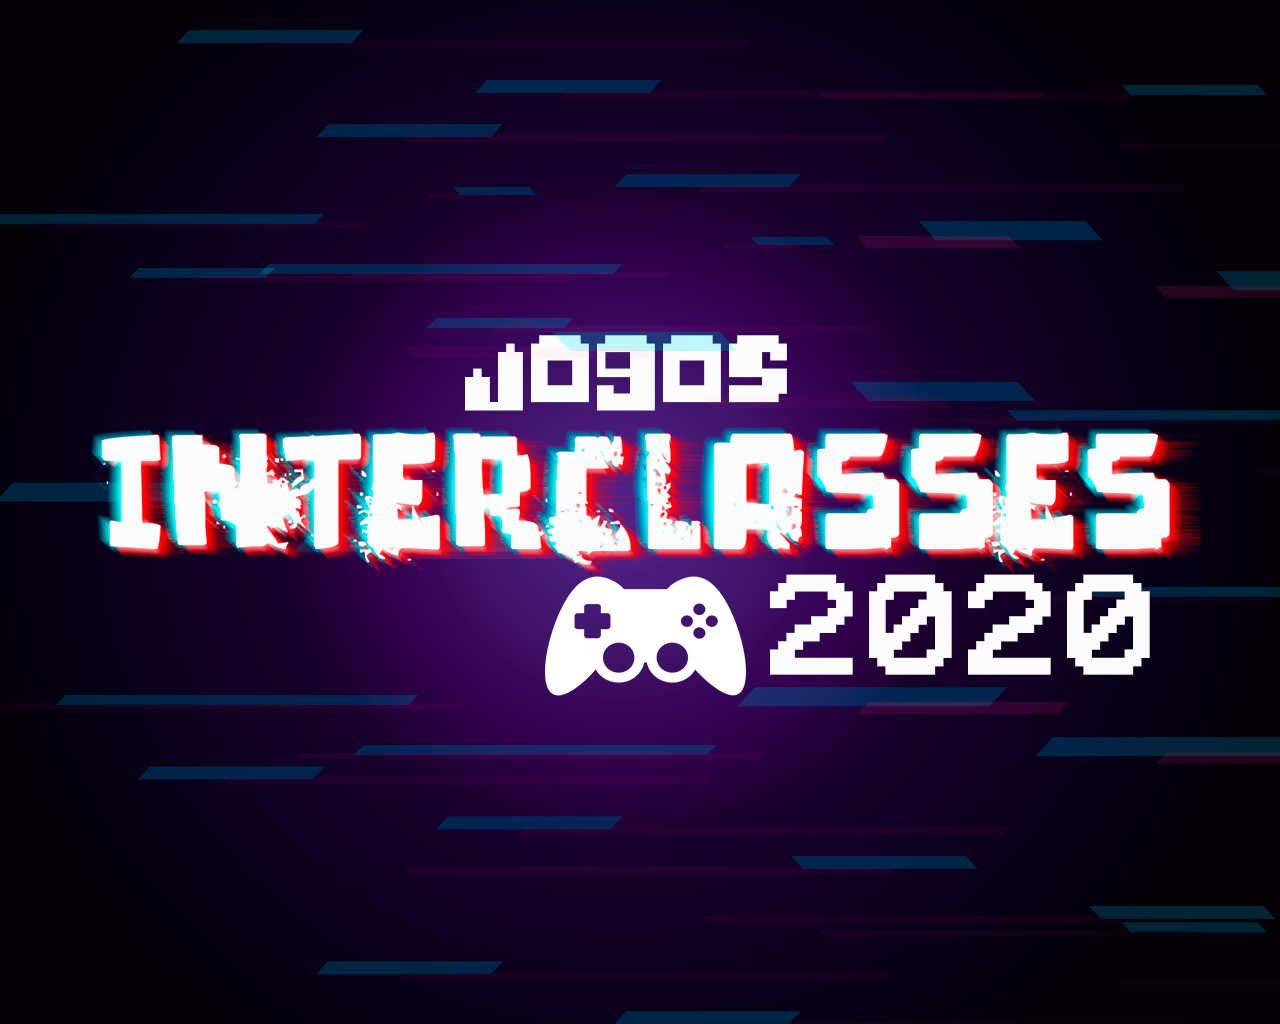 Interclasses 2020